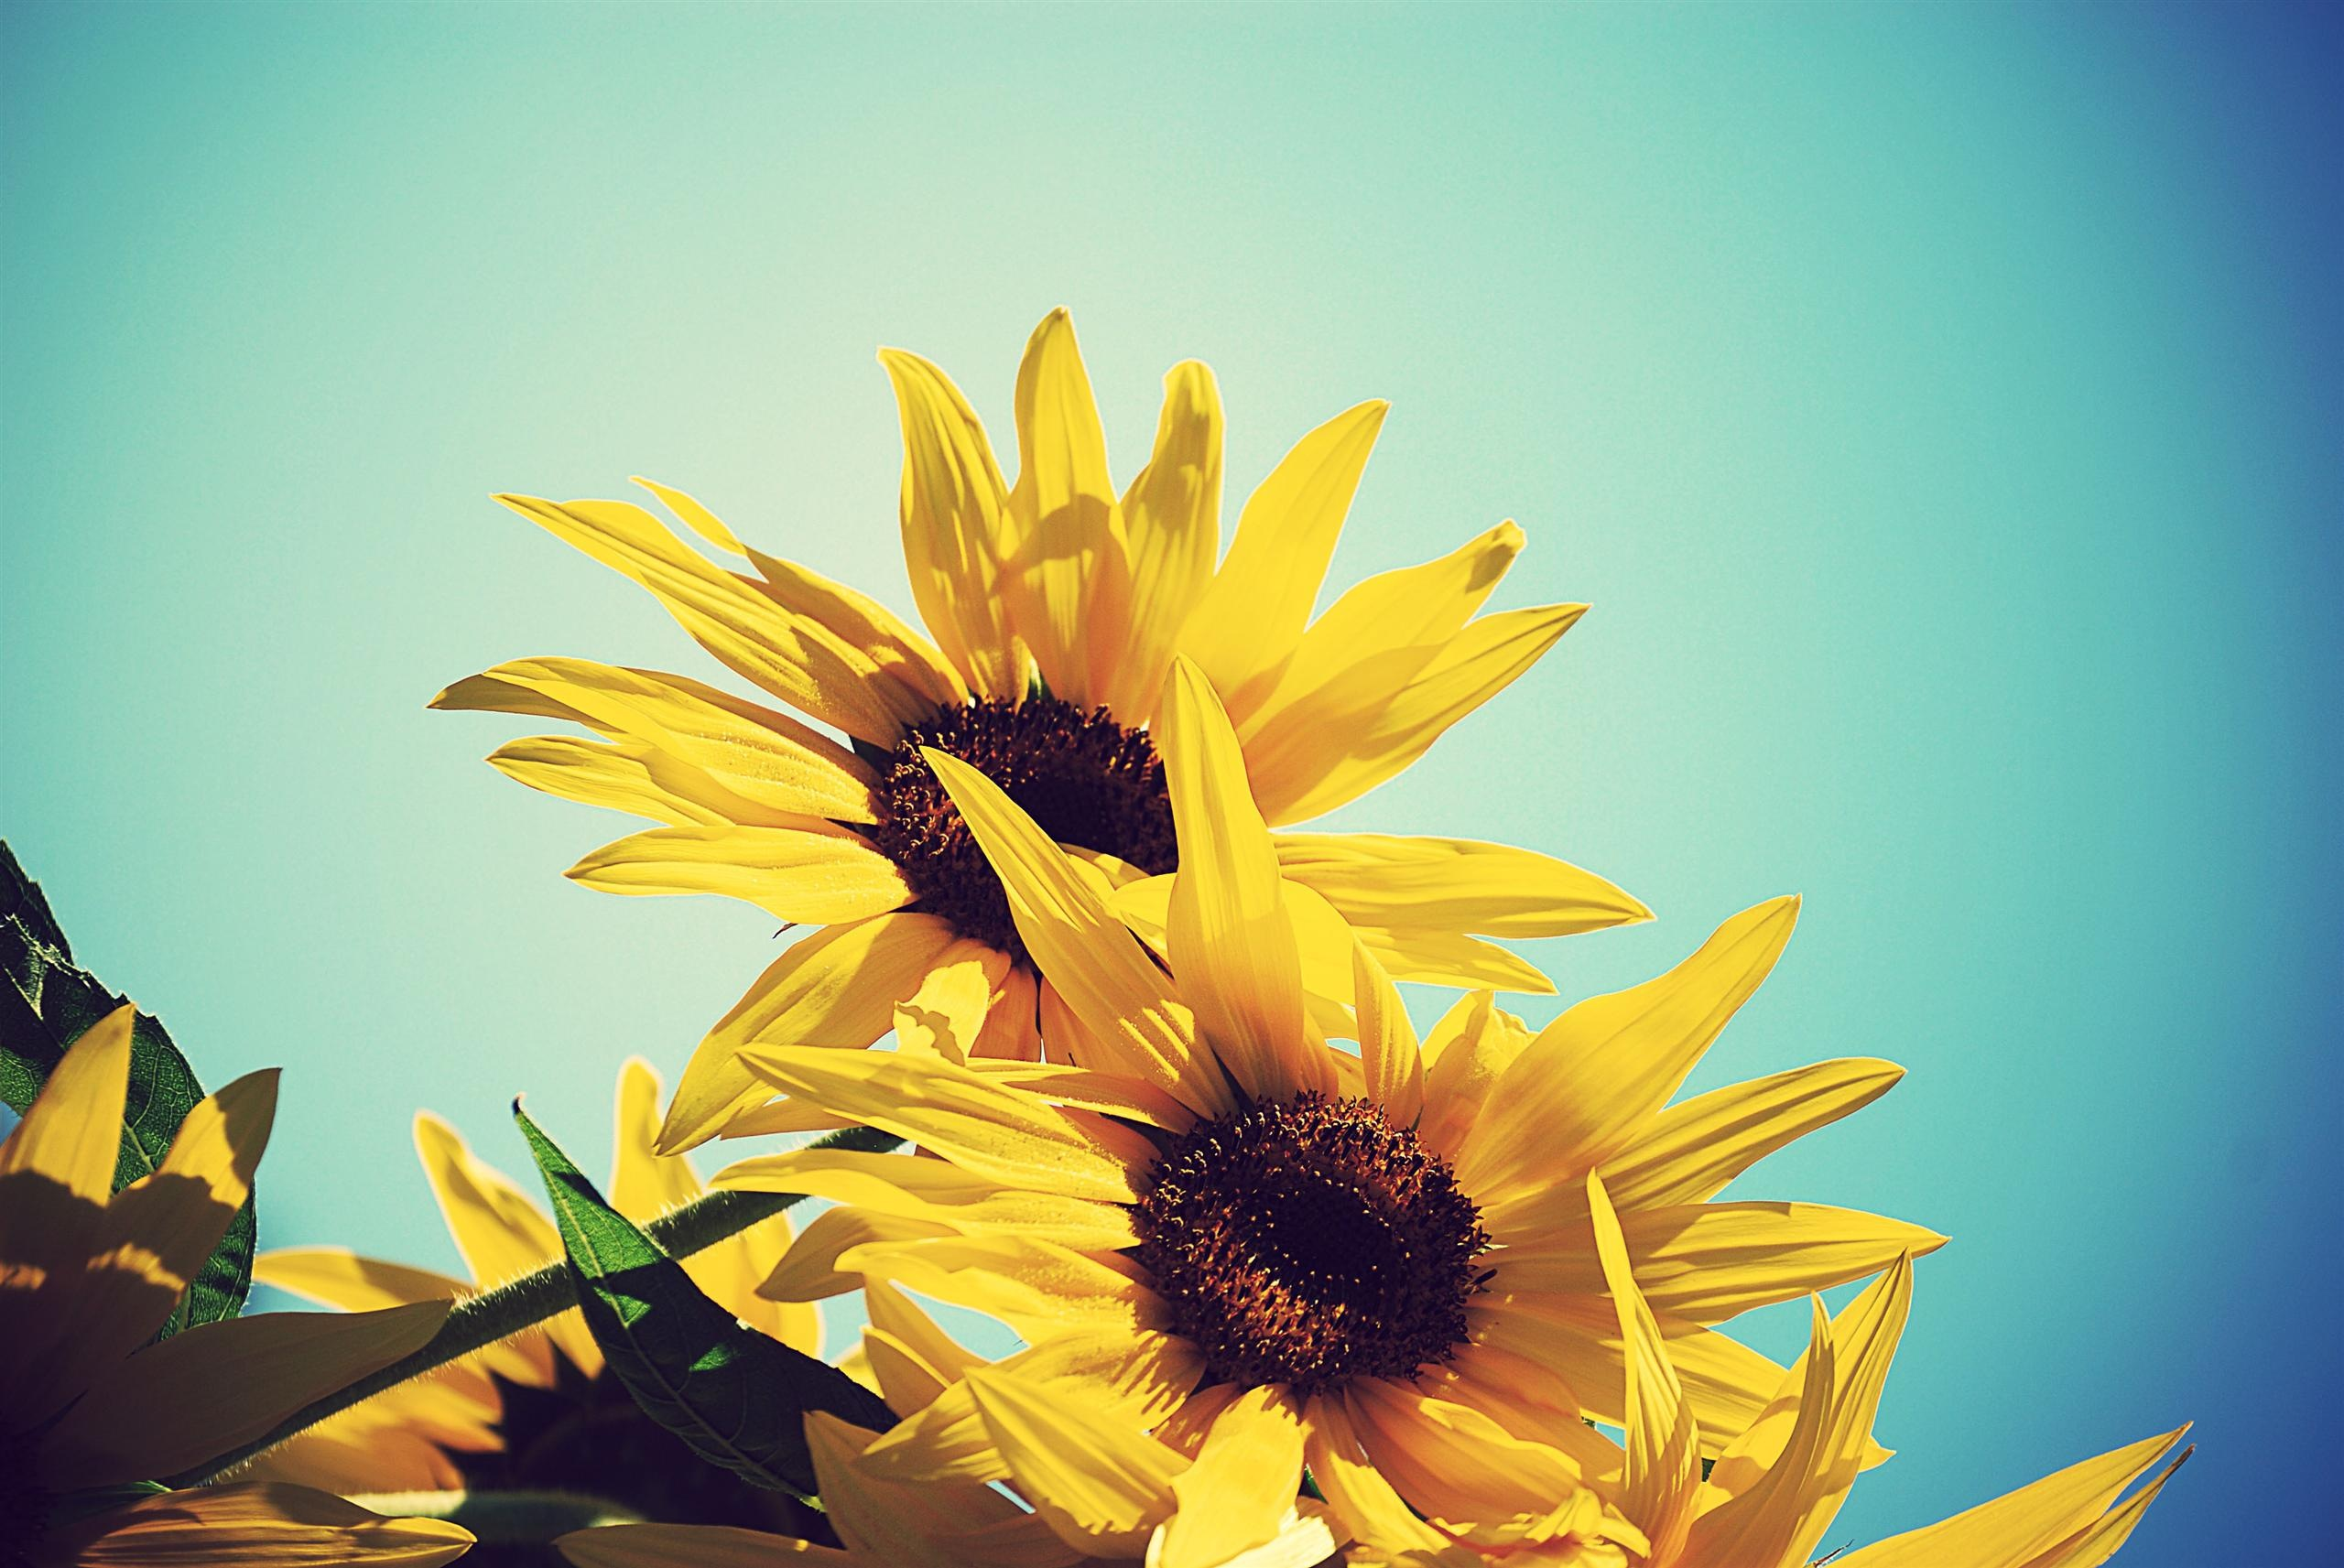 Sunflower Tumblr Wallpapers Background Is Cool